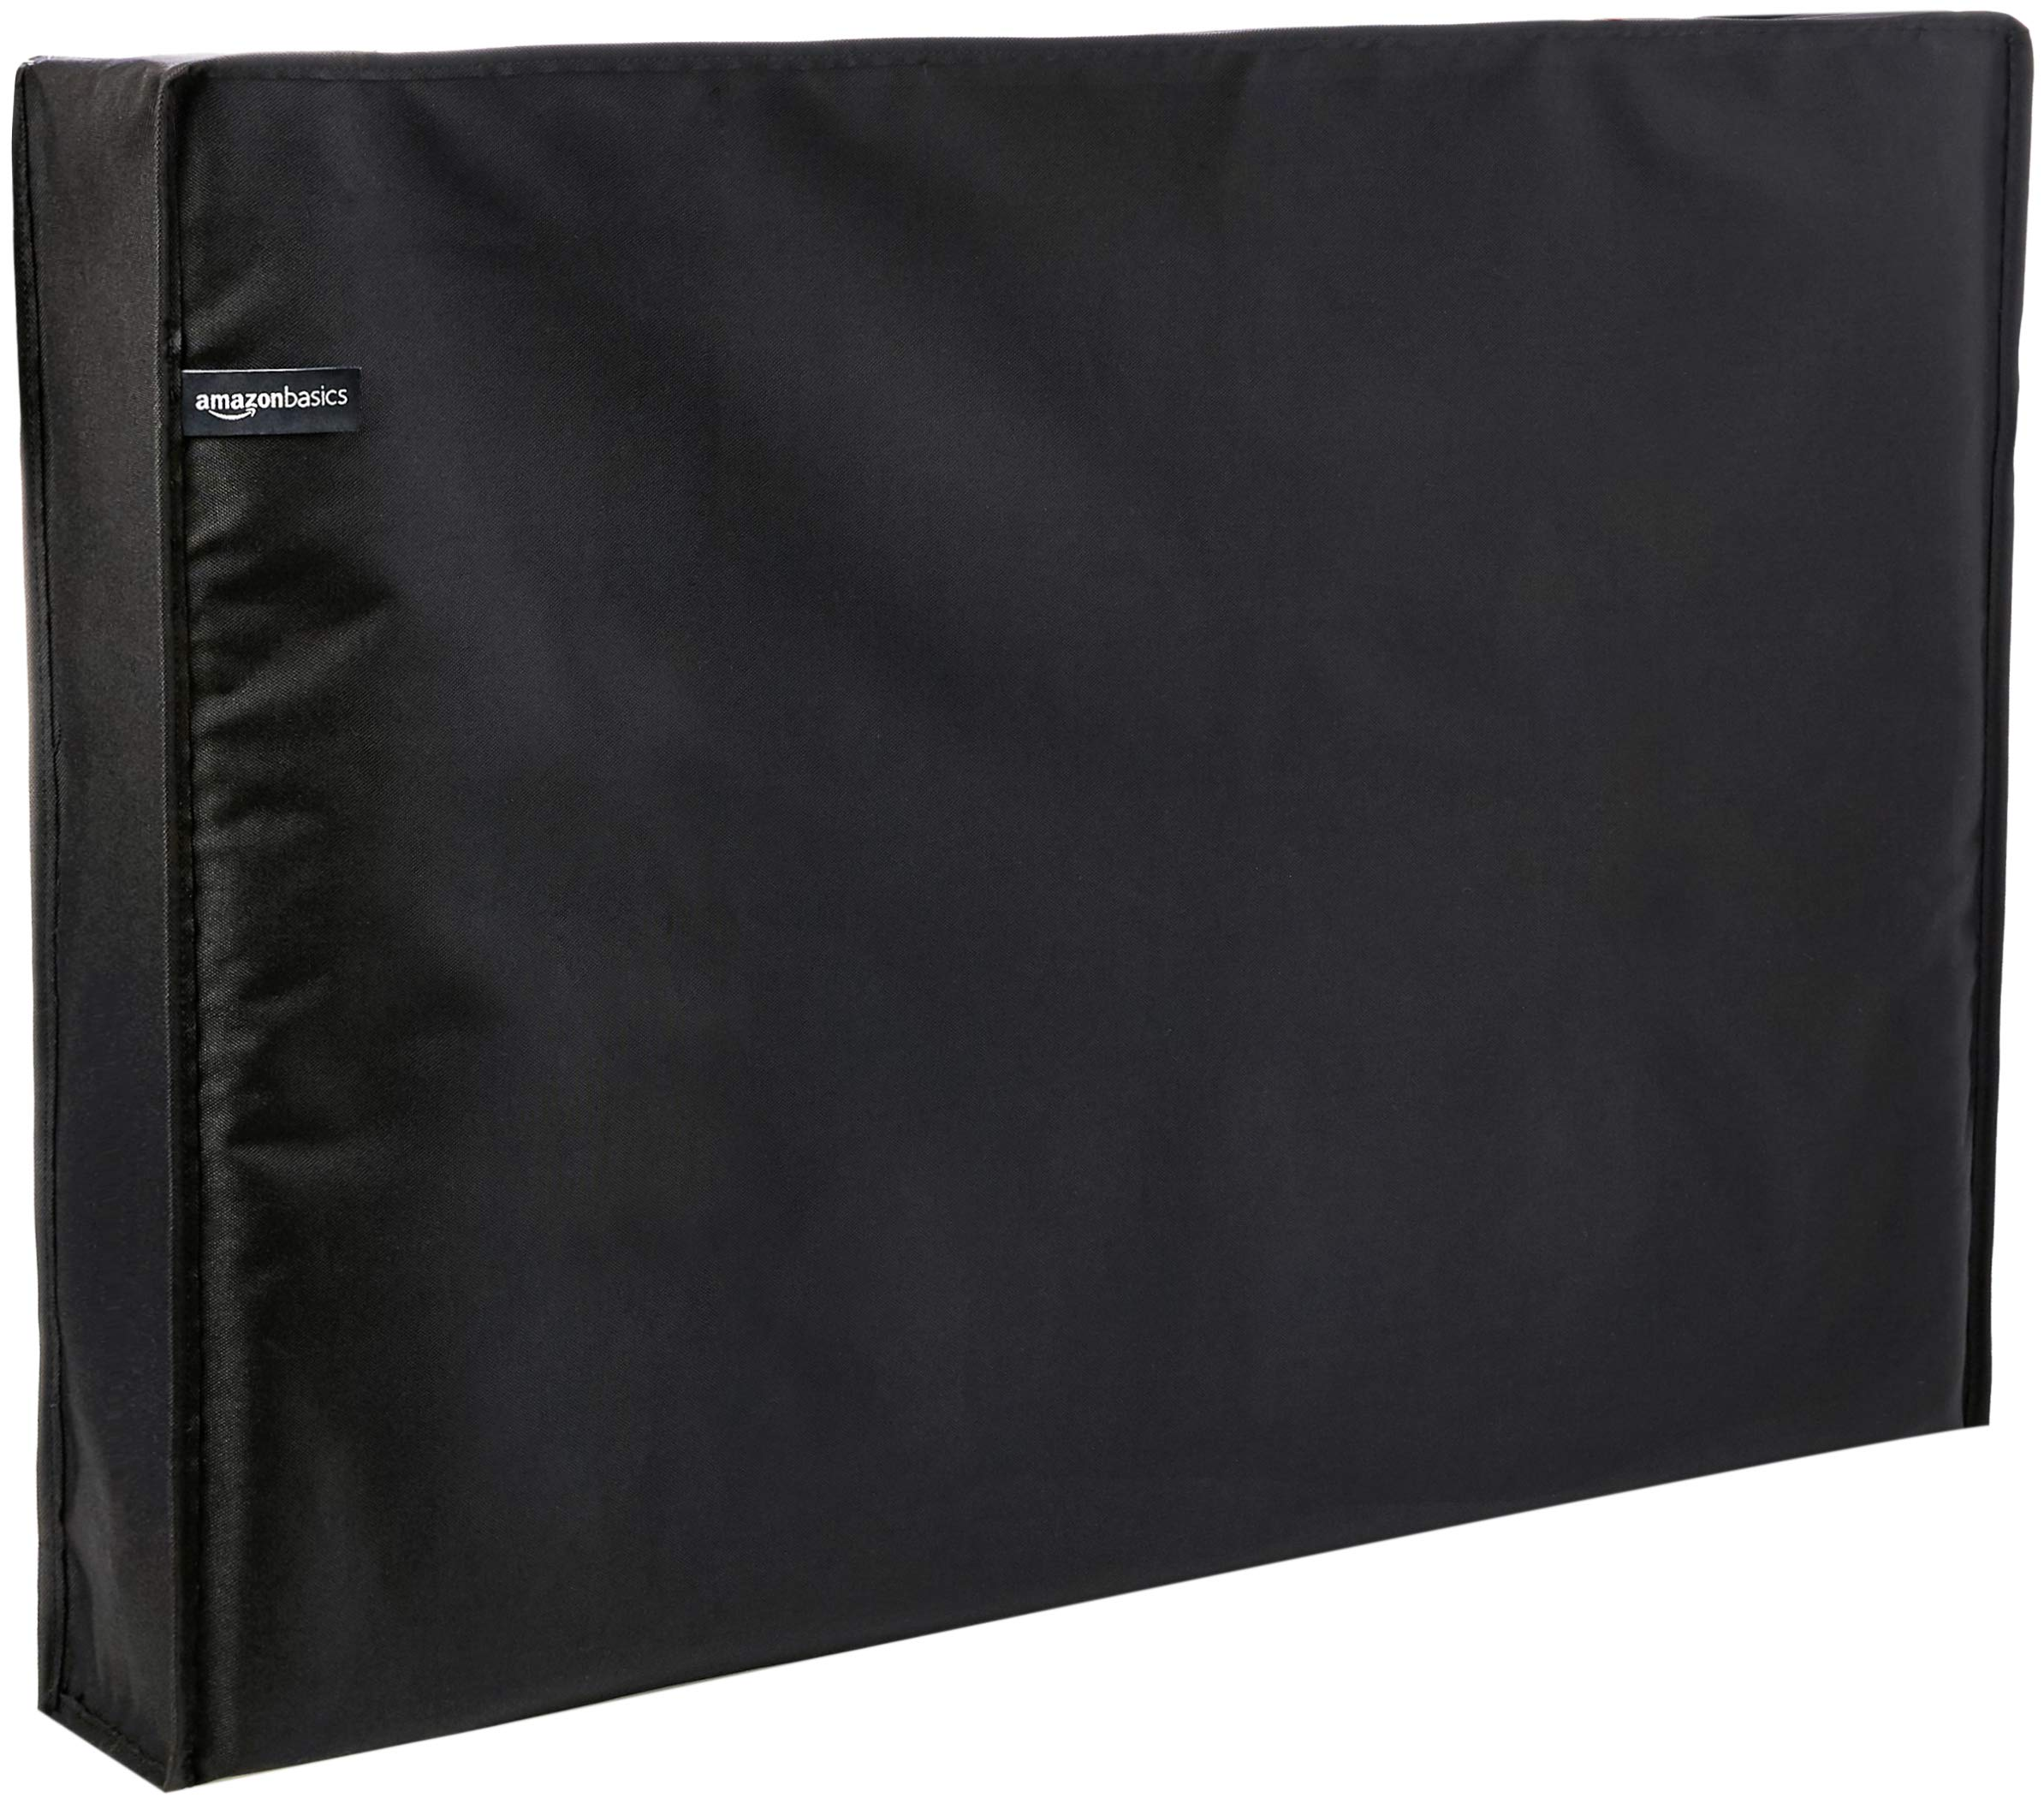 AmazonBasics Outdoor TV Cover - 55 to 58 inches